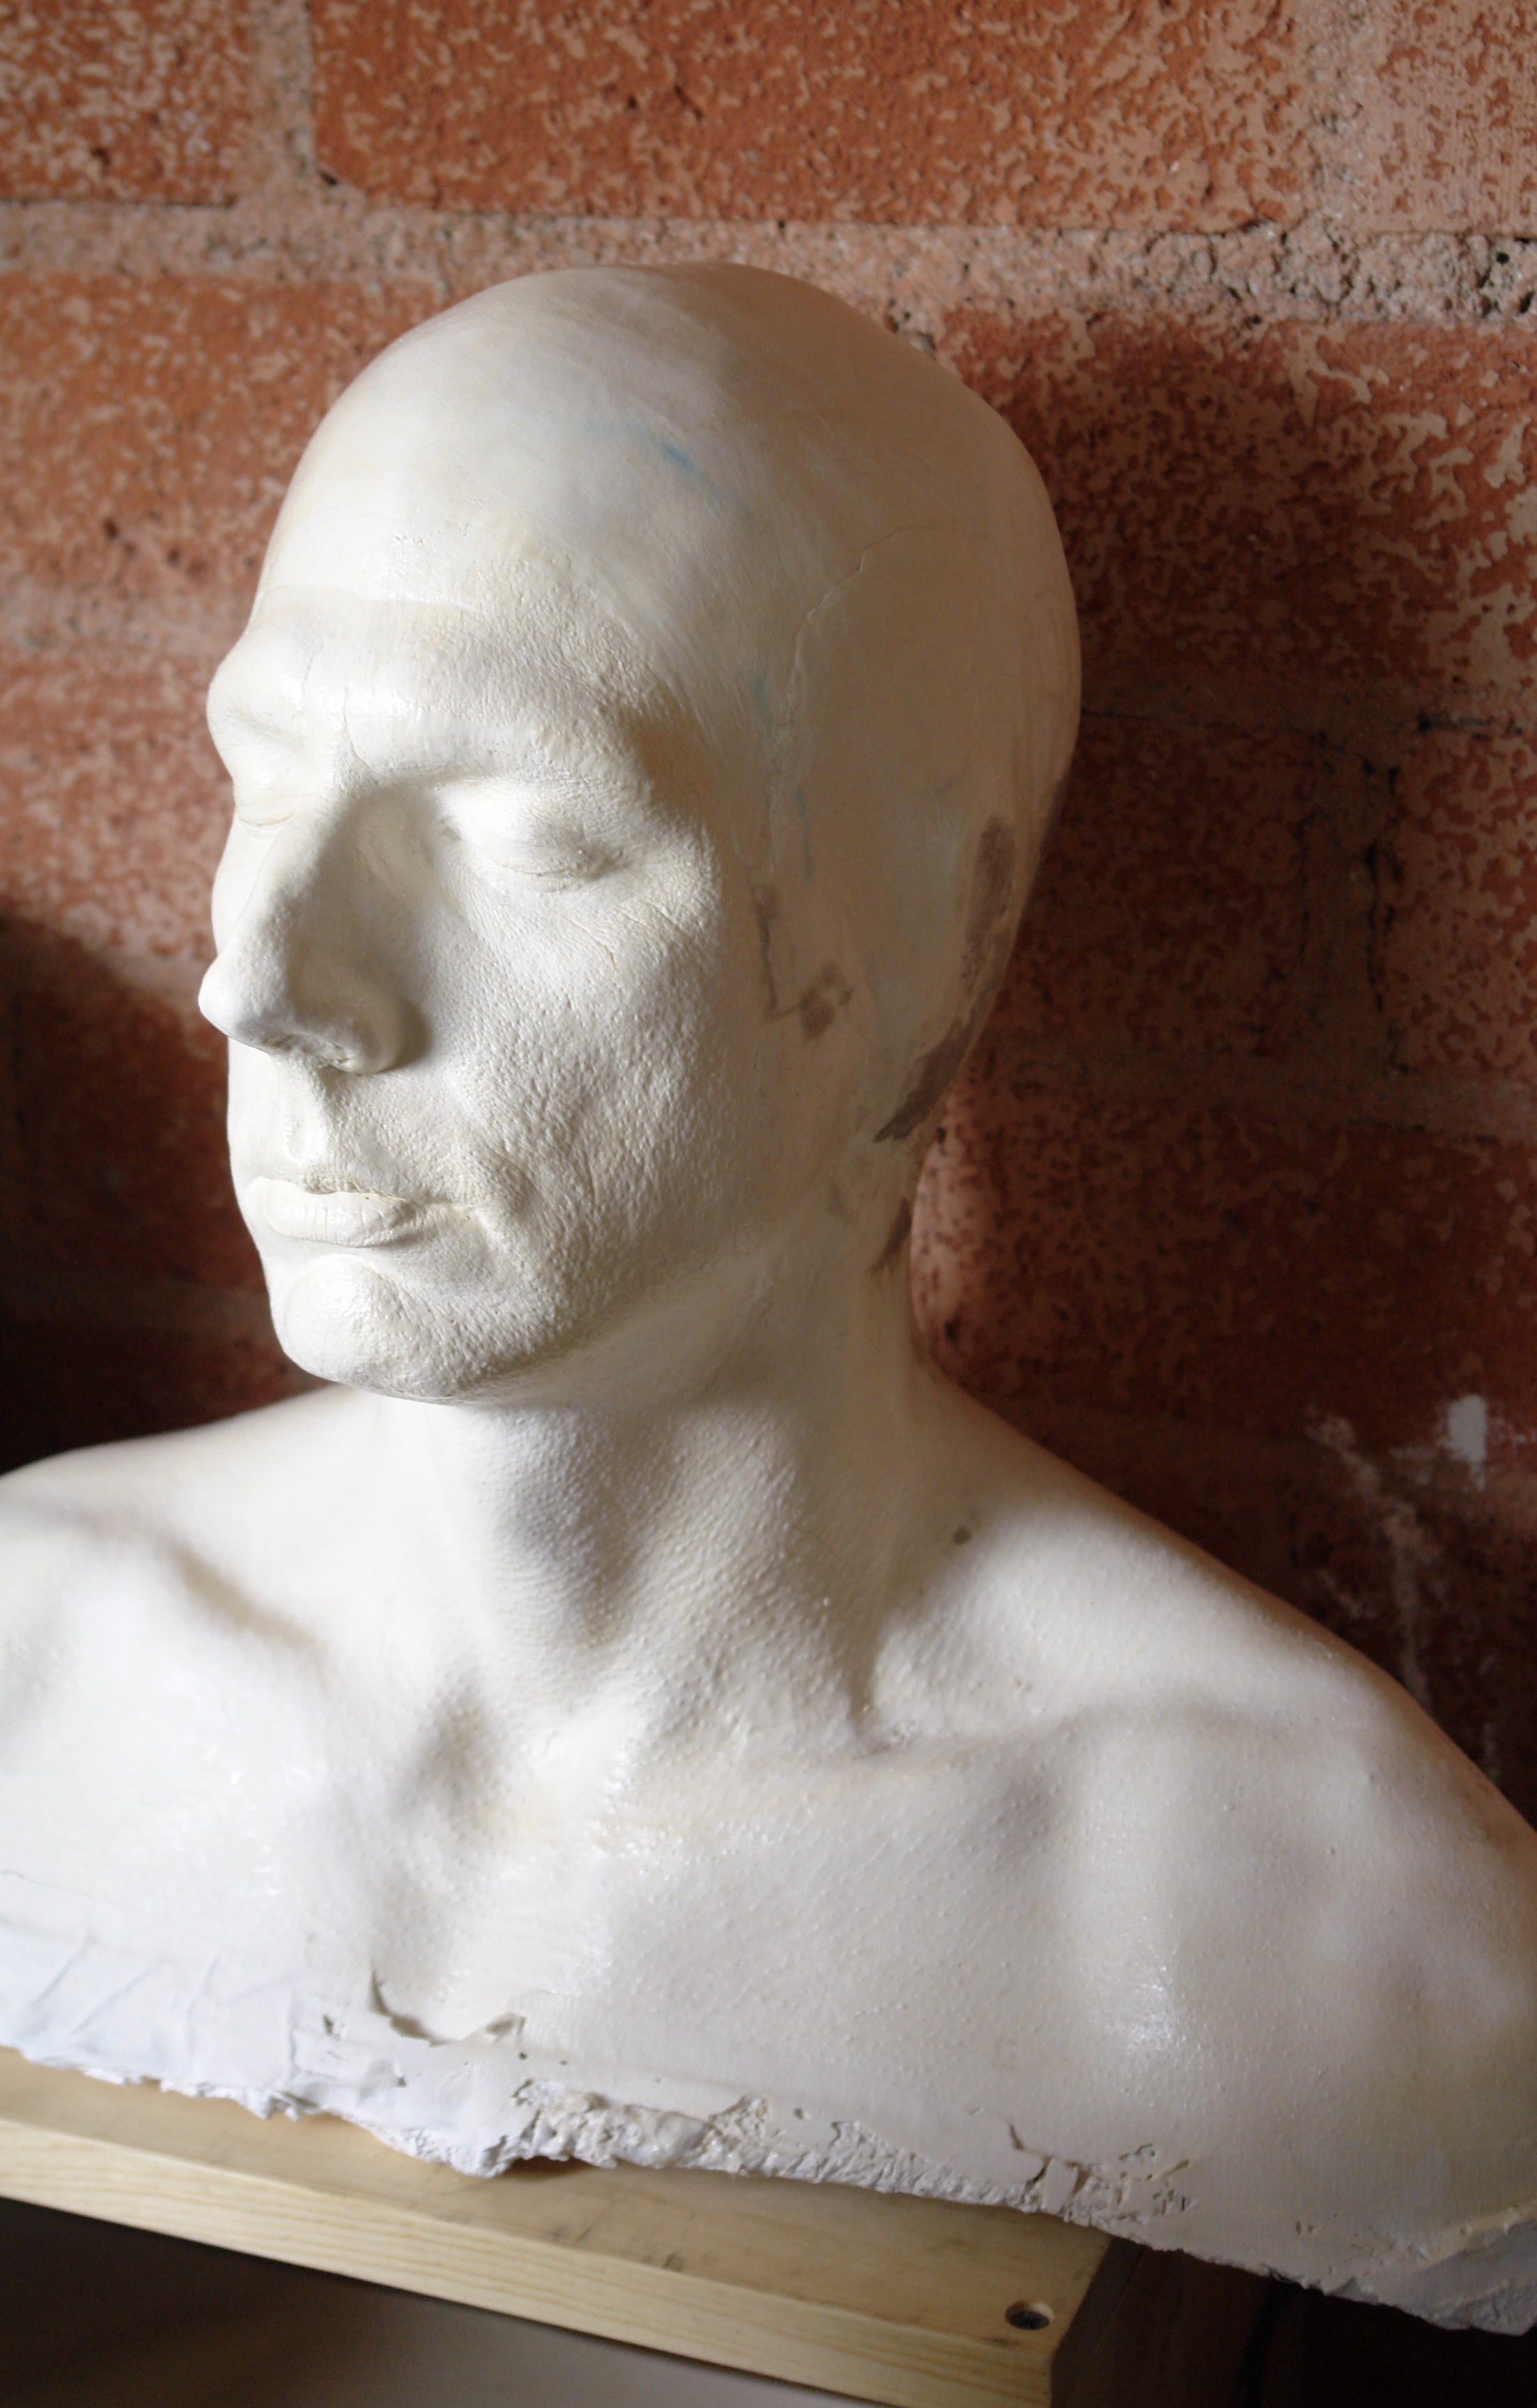 A plaster life cast of actor Nick Cimiluca at Barney Burman's B2FX shop, taken as part of his special character make-up as The Giant in Lascaux Entertainment's 2011 production of  The Elephant Man , directed by John Drouillard.  Photo by Natalie Drouillard.